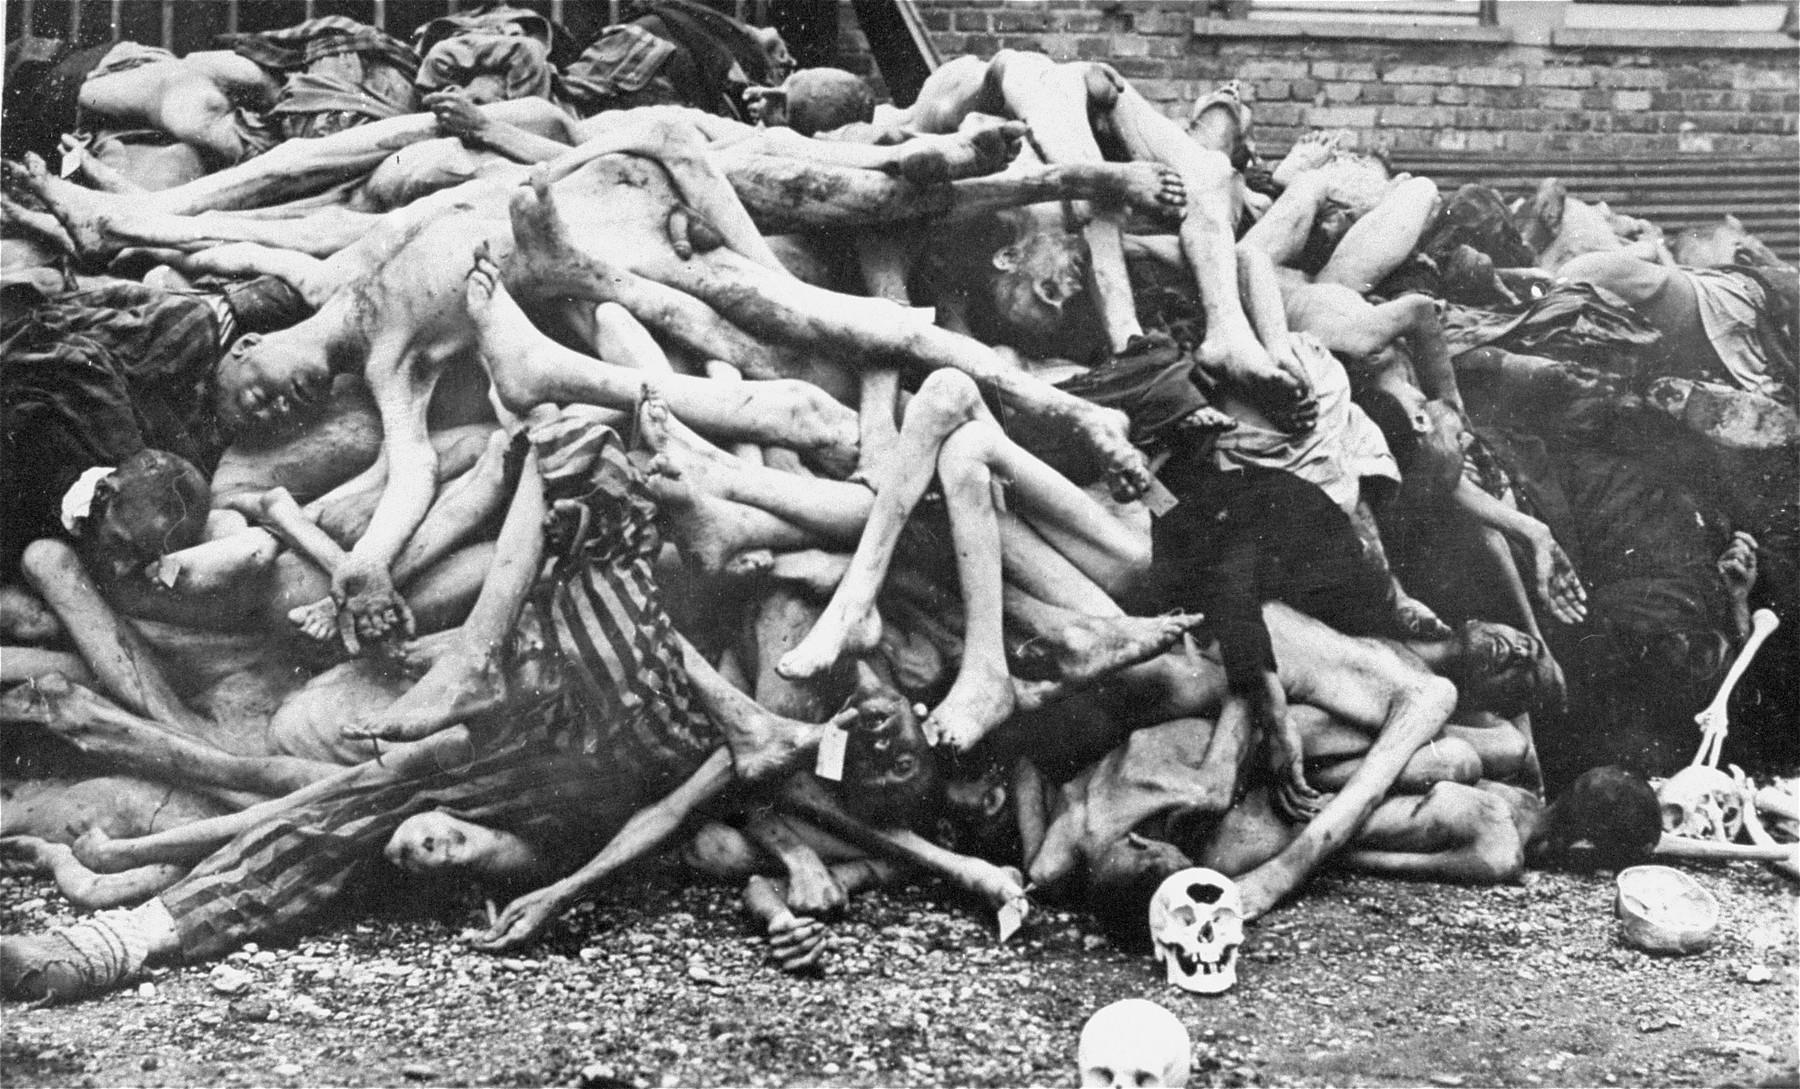 The bodies of former prisoners are piled outside the crematorium at the newly liberated Dachau concentration camp.